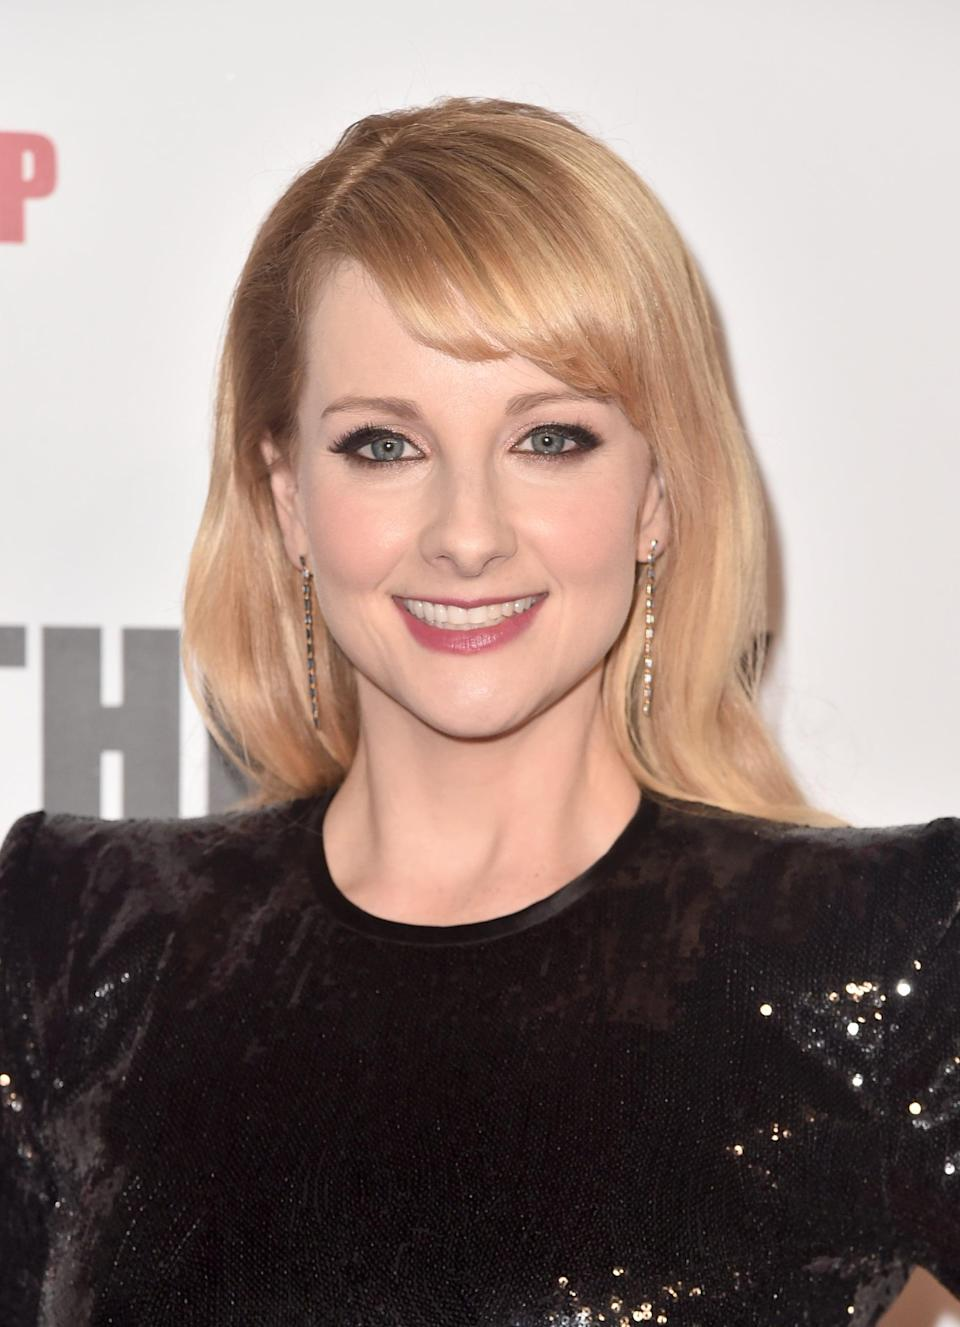 """<p>Following the end of <strong>TBBT</strong>, Melissa Rauch (who plays the adorably squeaky-voiced microbiologist Bernadette Rostenkowski-Wolowitz) will <a href=""""http://www.flickeringmyth.com/2018/10/steven-soderberghs-the-laundromat-adds-melissa-rauch-jeffrey-wright-robert-patrick-and-more/"""" rel=""""nofollow noopener"""" target=""""_blank"""" data-ylk=""""slk:make an exciting returning to the big screen"""" class=""""link rapid-noclick-resp"""">make an exciting returning to the big screen</a> in the Steven Soderbergh Panama Papers drama <strong>The Laundromat</strong>, which stars <a class=""""link rapid-noclick-resp"""" href=""""https://www.popsugar.com/Meryl-Streep"""" rel=""""nofollow noopener"""" target=""""_blank"""" data-ylk=""""slk:Meryl Streep"""">Meryl Streep</a> and Gary Oldman. The film is currently in post-production and is <a href=""""https://www.popsugar.com/entertainment/New-Netflix-Movies-2019-45621562"""" rel=""""nofollow noopener"""" target=""""_blank"""" data-ylk=""""slk:due to premiere on Netflix sometime this year"""" class=""""link rapid-noclick-resp"""">due to premiere on Netflix sometime this year</a>. The flick will follow a group of journalists who discovered a series of files that link the world's most powerful political figures to secret banking accounts to avoid taxes. </p>"""